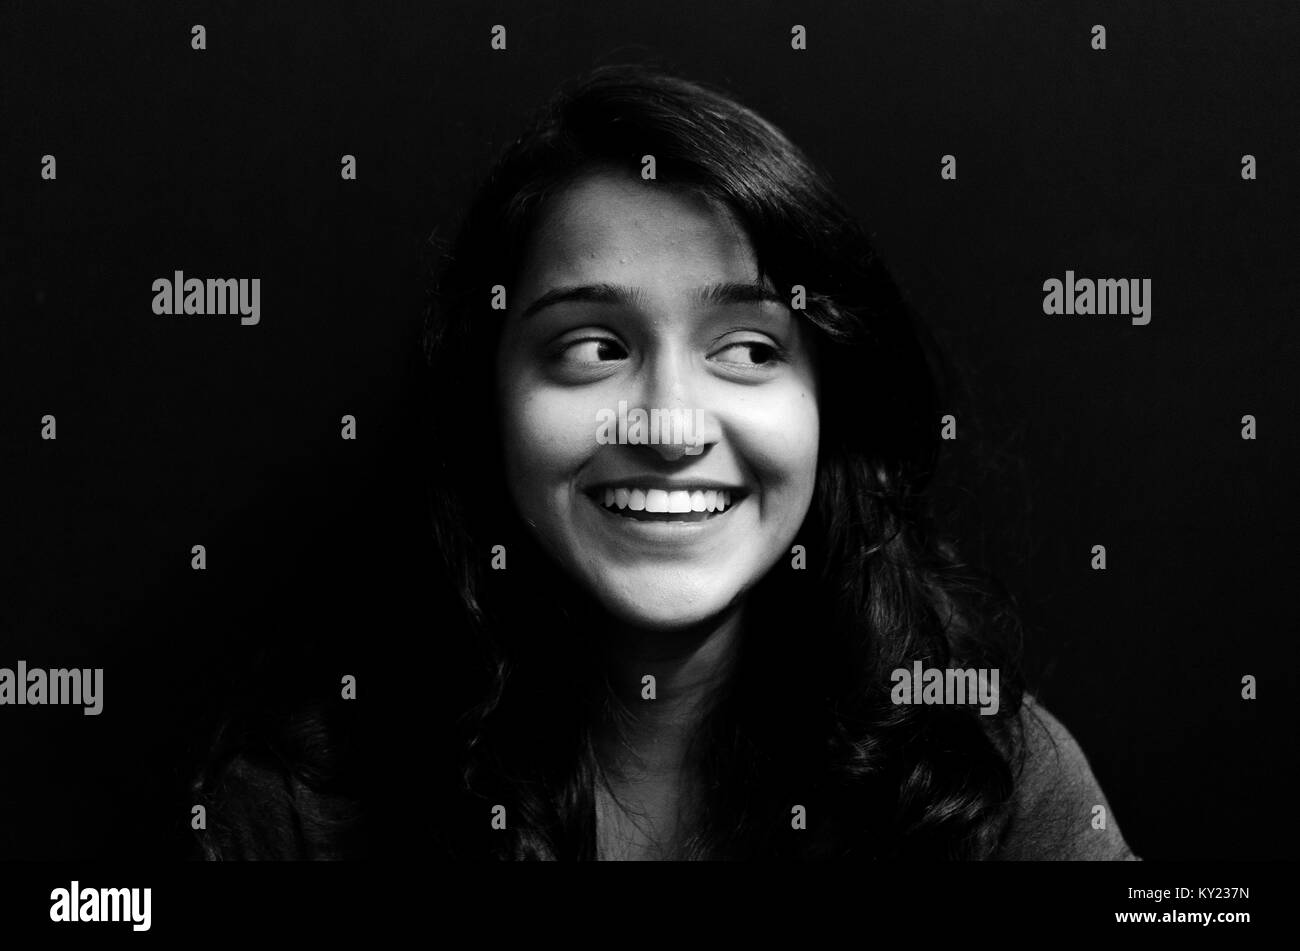 Black and white portrait of a cute, chubby girl looking away, smiling, over black background. - Stock Image